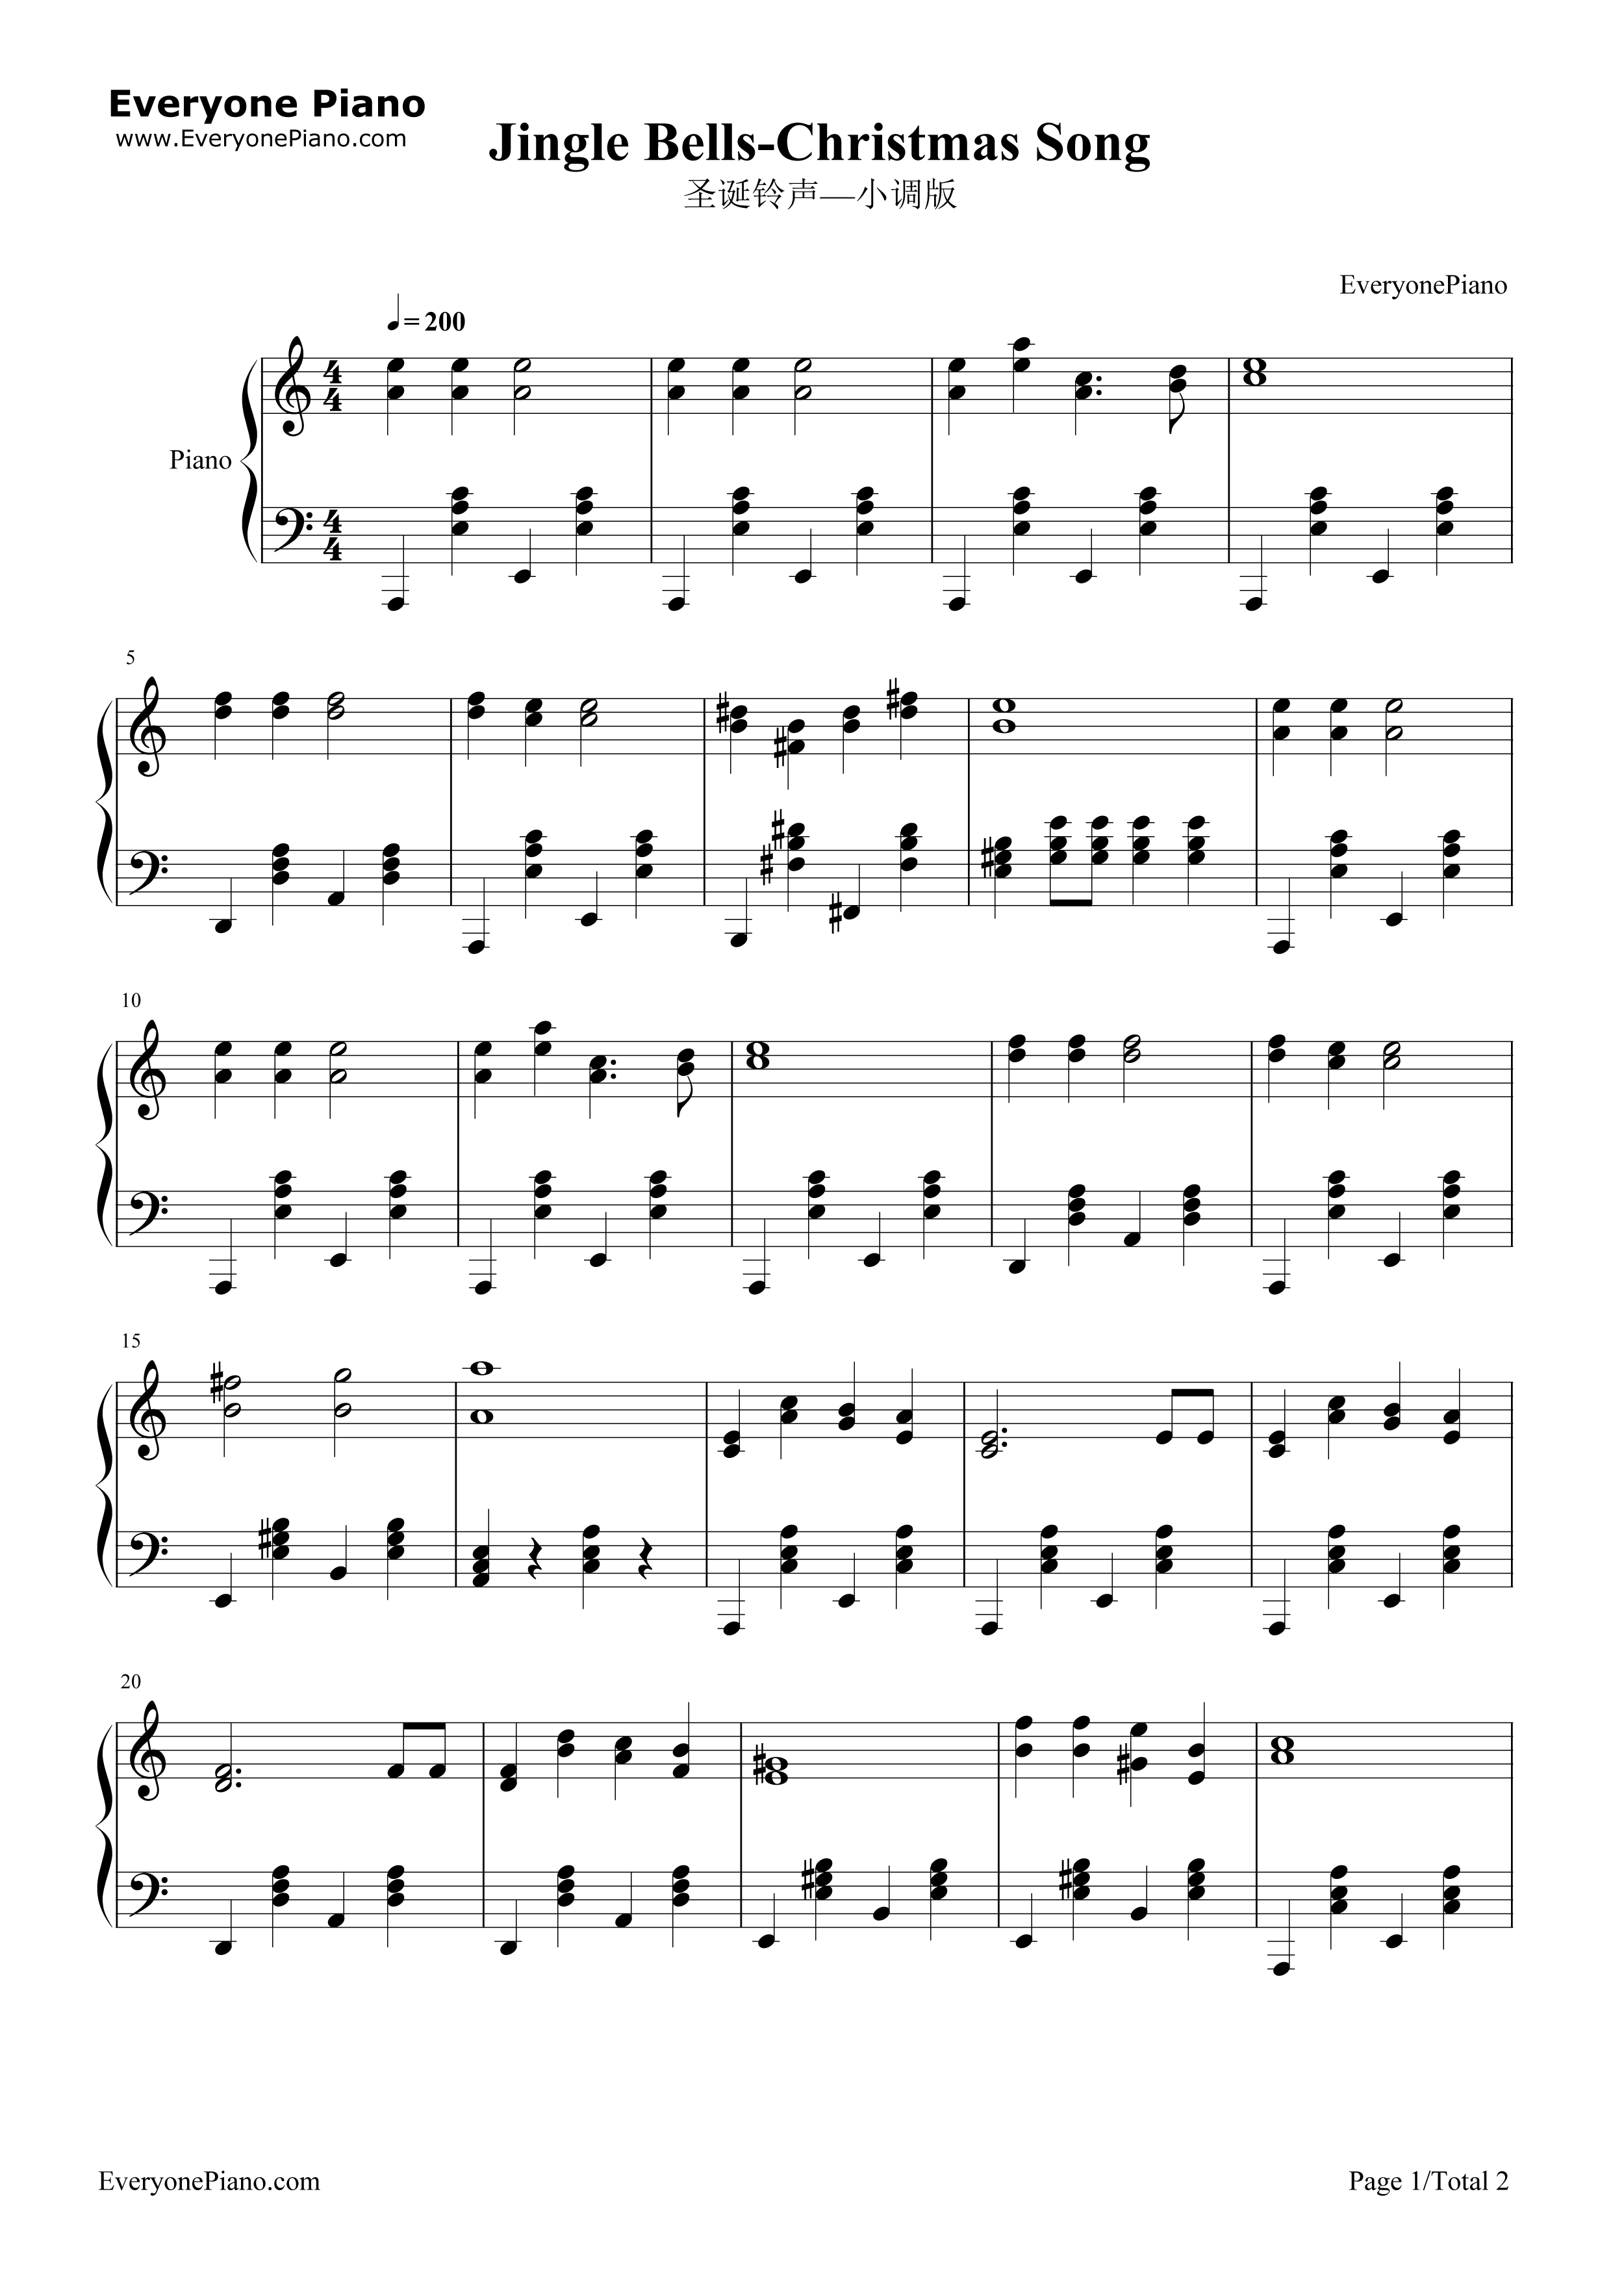 Jingle Bells-Christmas Song Stave Preview